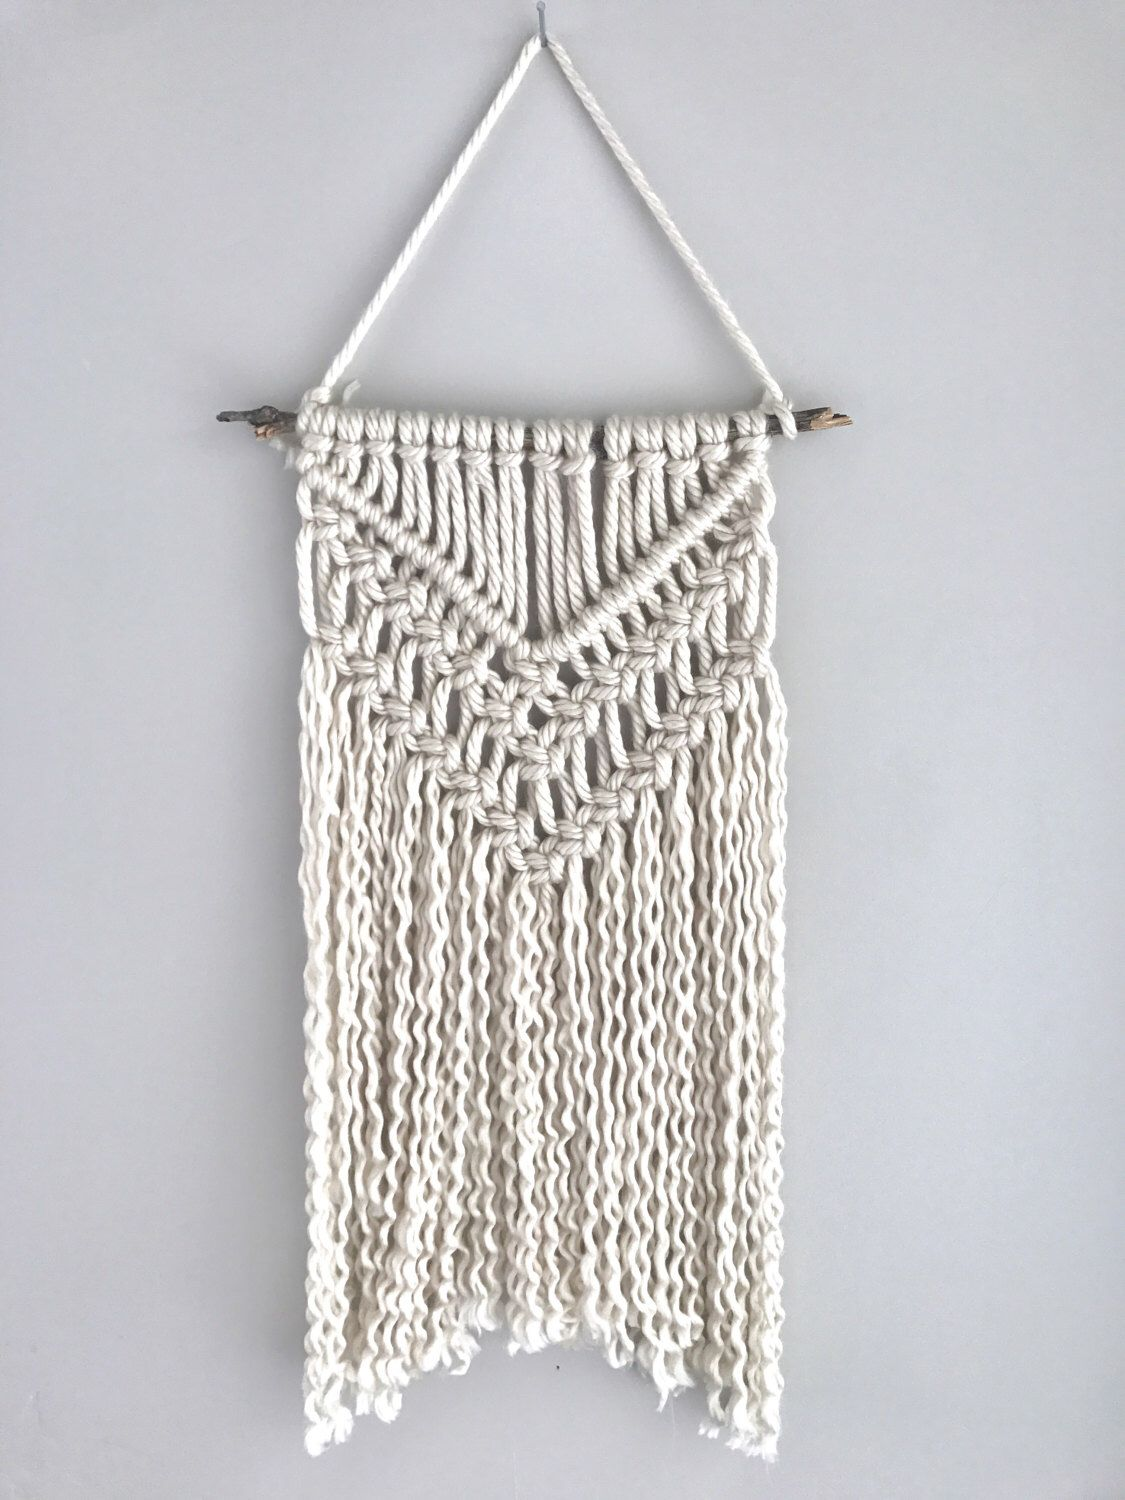 Boho Wall Hanging macrame wall hanging | yarn macrame | tapestry | nursery decor